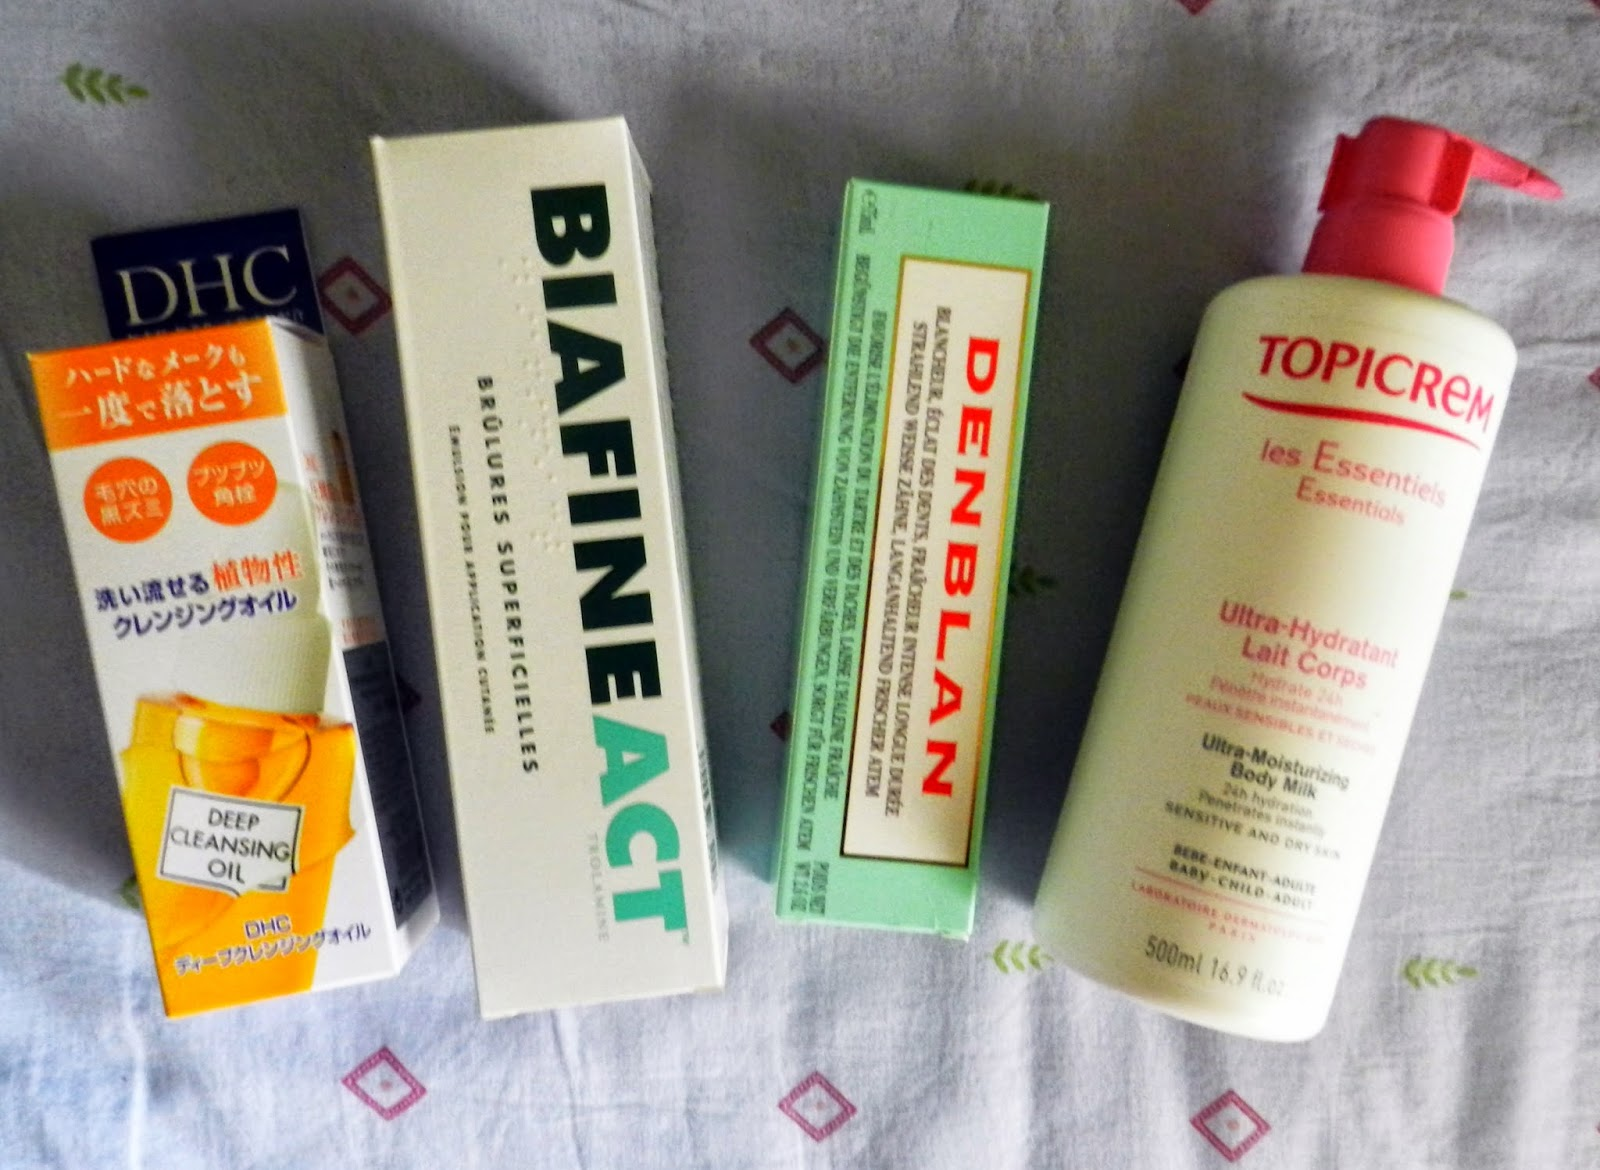 DHC Deep Cleansing Oil, BiafineAct, Denblan Toothpaste, Topicrem